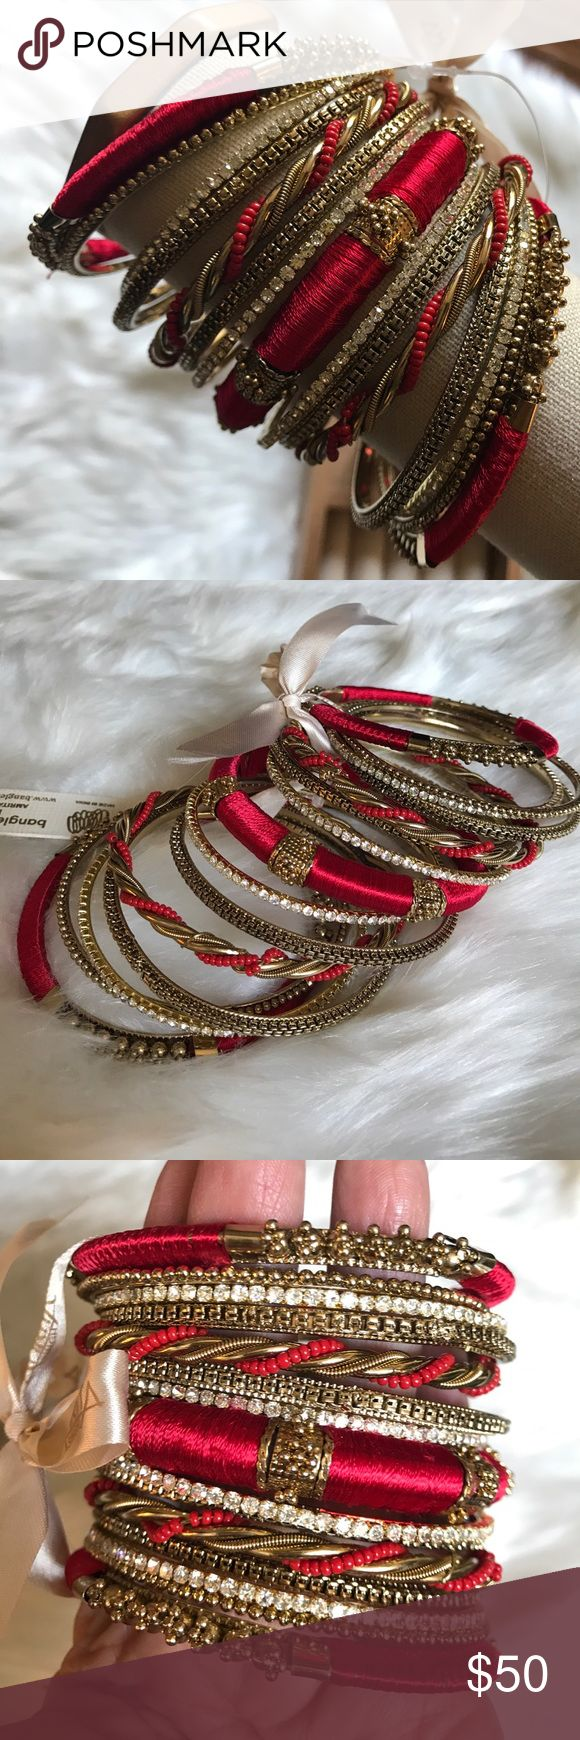 "Amrita Singh Bangle Bangle 15 piece Bracelet Set Amrita Singh Bangle Bangle 15 piece Bracelet Set. 15 piece layered Antique gold-tone brass Bangle set embellished with red silk thread, resin beads and clear Austrian crystals. Size 8 (20.32 cm). Stacked width 2.5"". Amrita Singh Jewelry Bracelets"